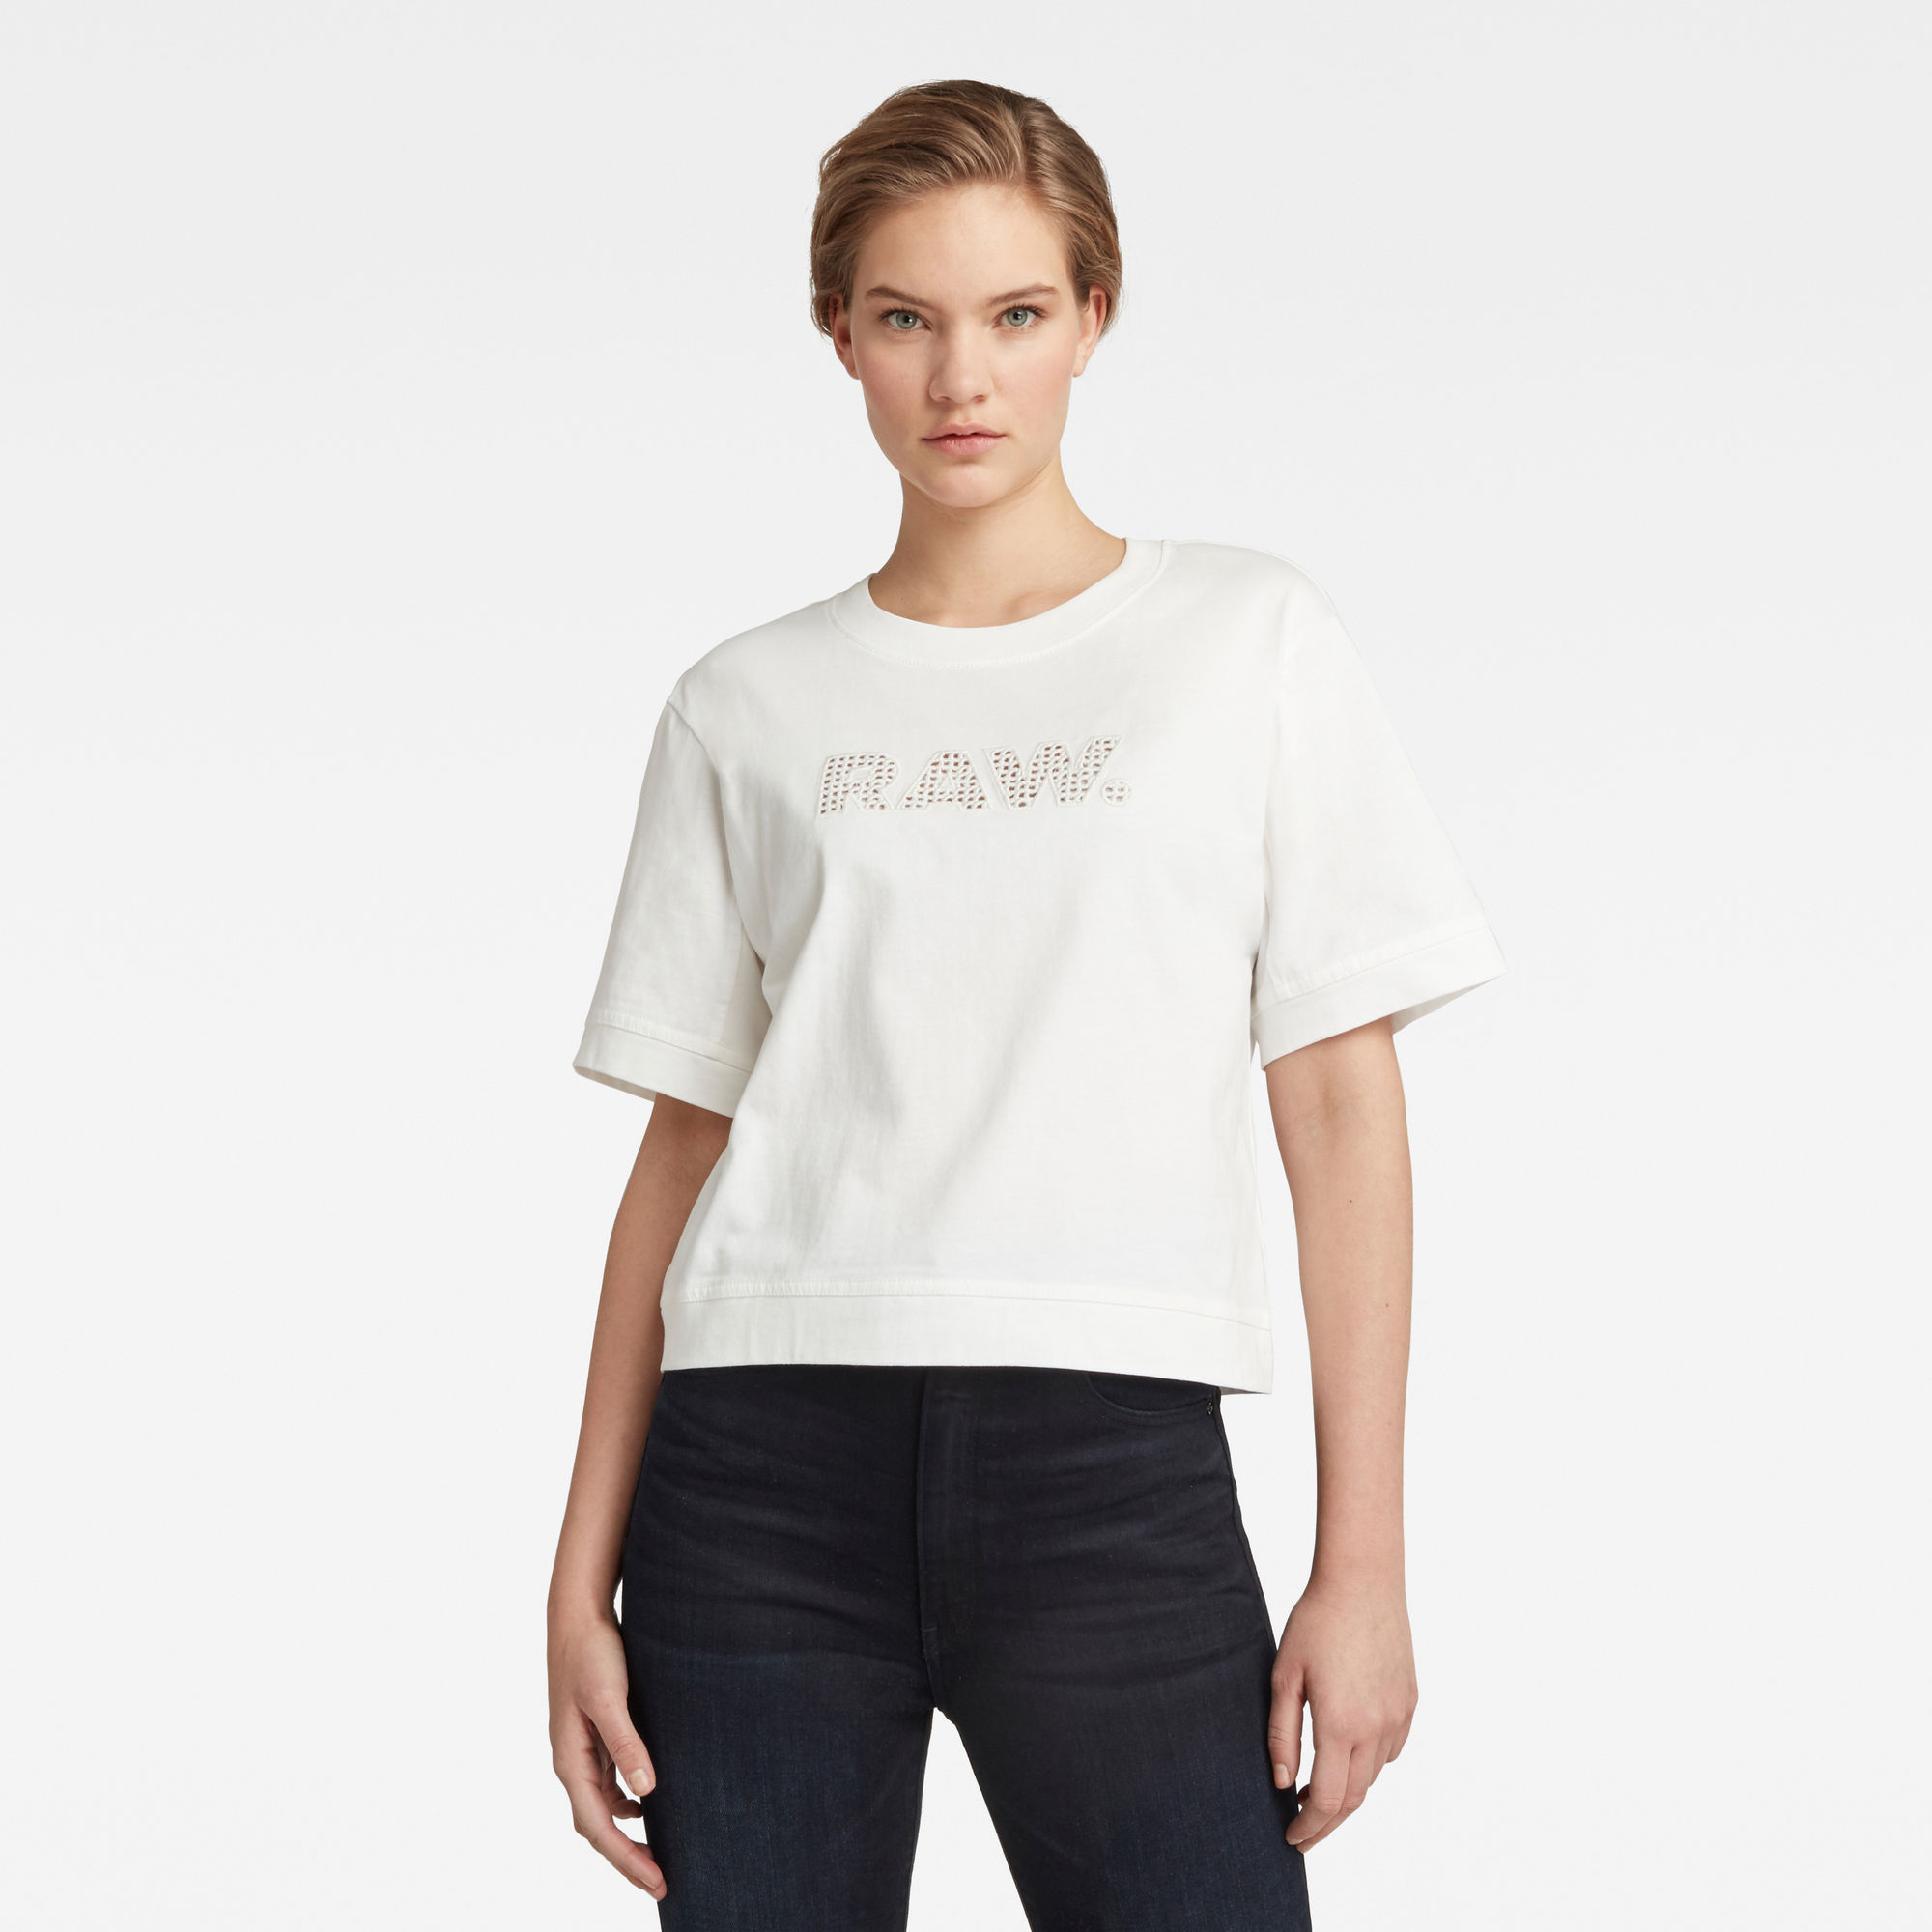 G-Star RAW Dames Boxy Fit RAW Embroidery Tee Wit